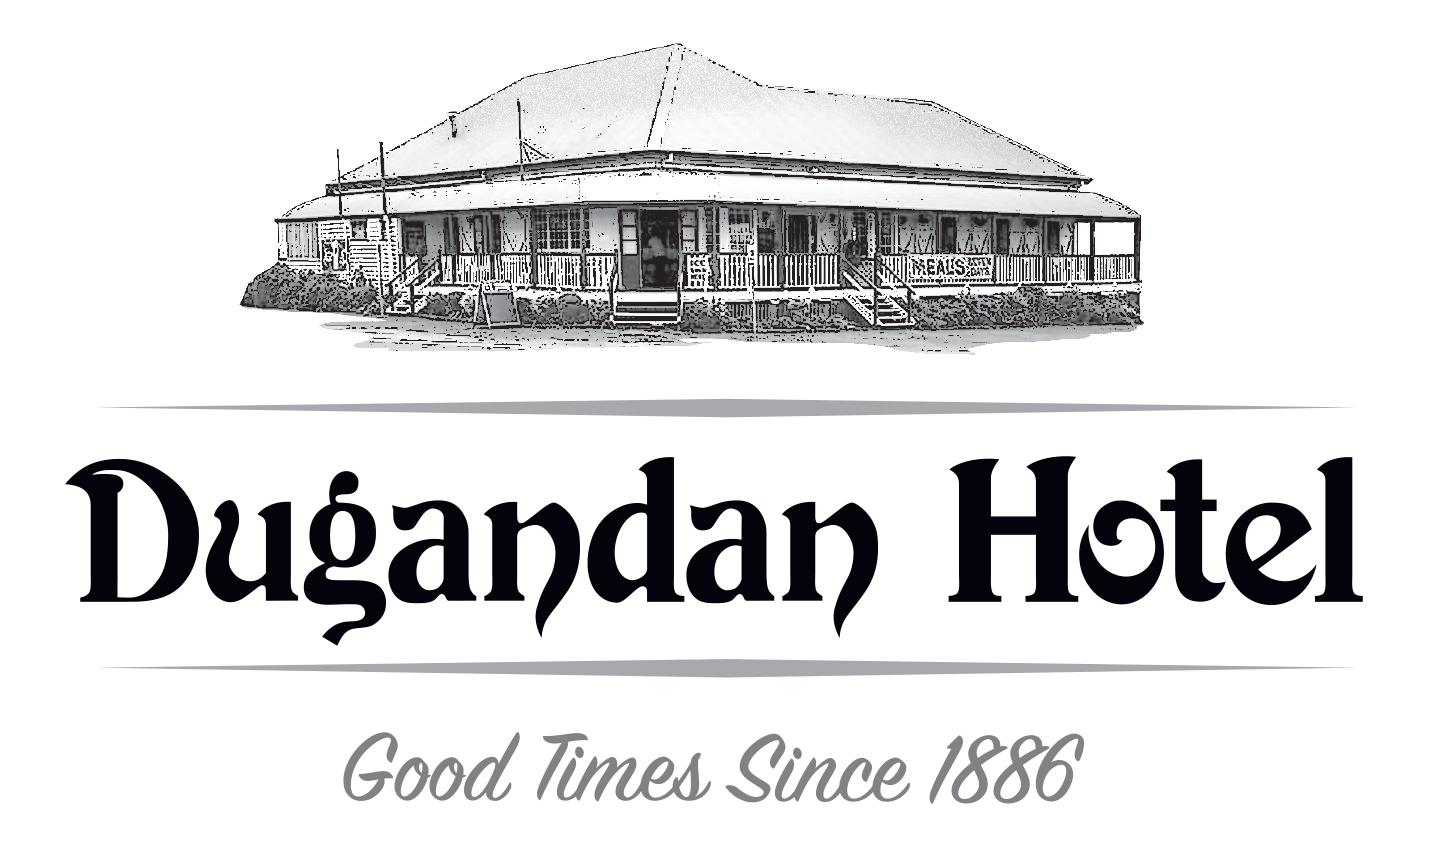 Dugandan Hotel Logo and Images